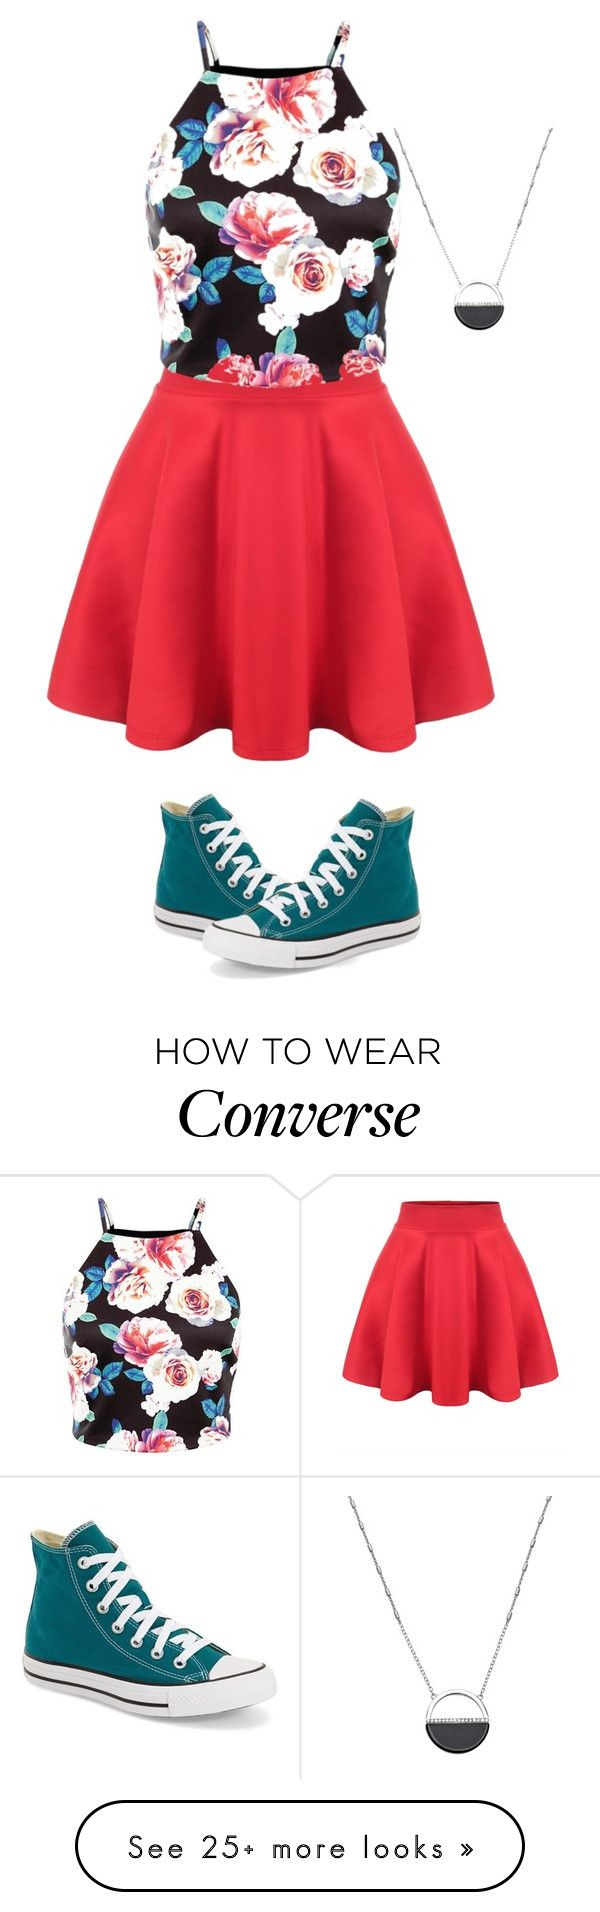 """Skirt + Converse"" by spikerlydsjc on Polyvore featuring White House Black Market, Converse, women's clothing, women, female, woman, misses and juniors"